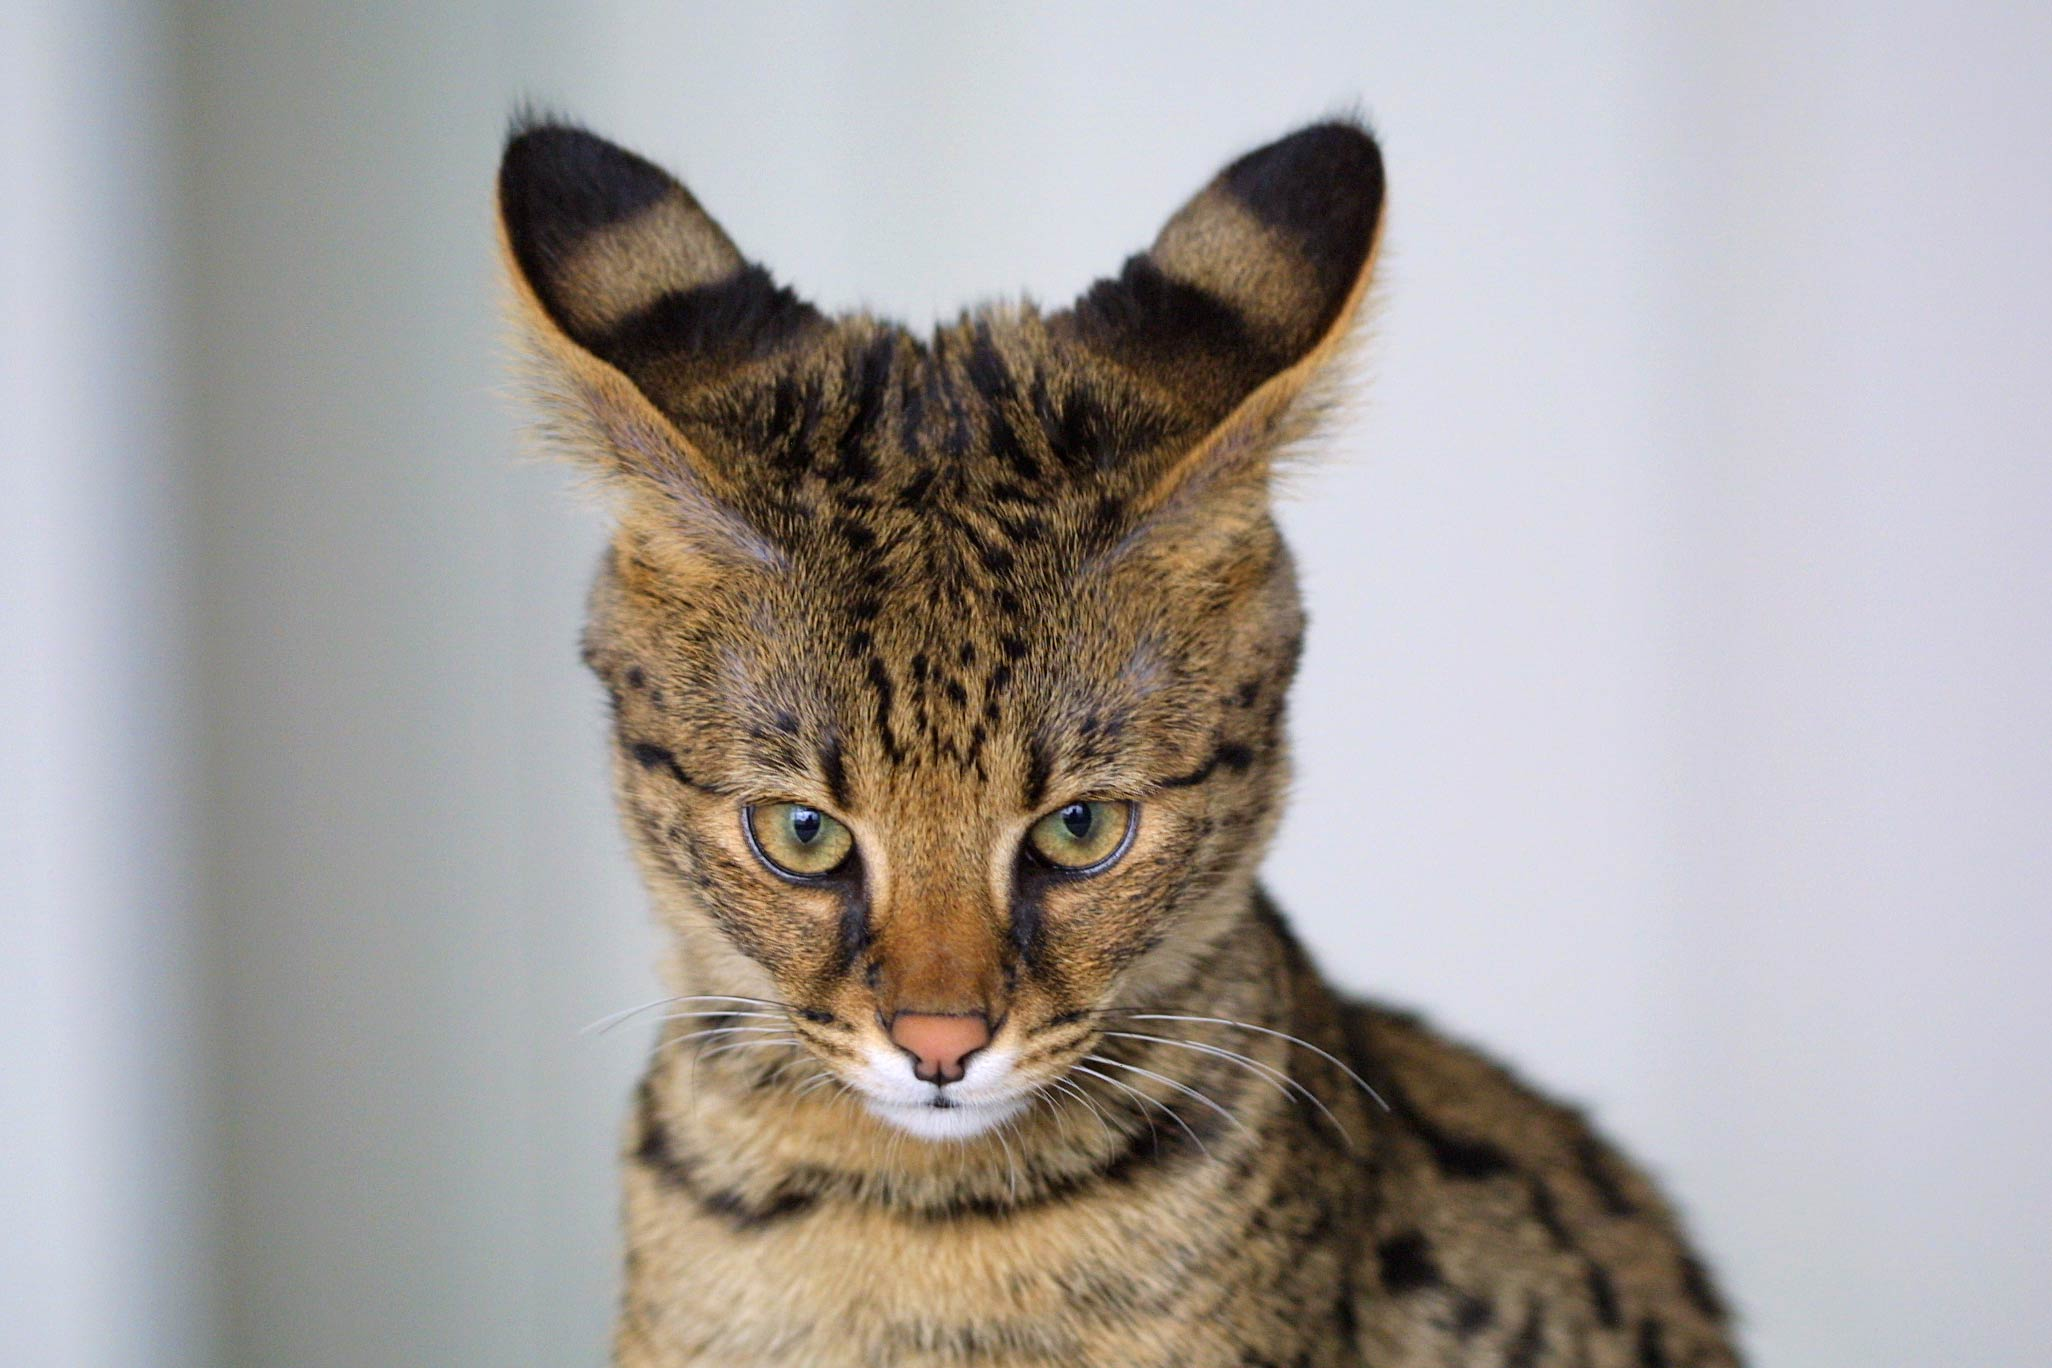 File:Savannah Cat closeup.jpg - Wikipedia